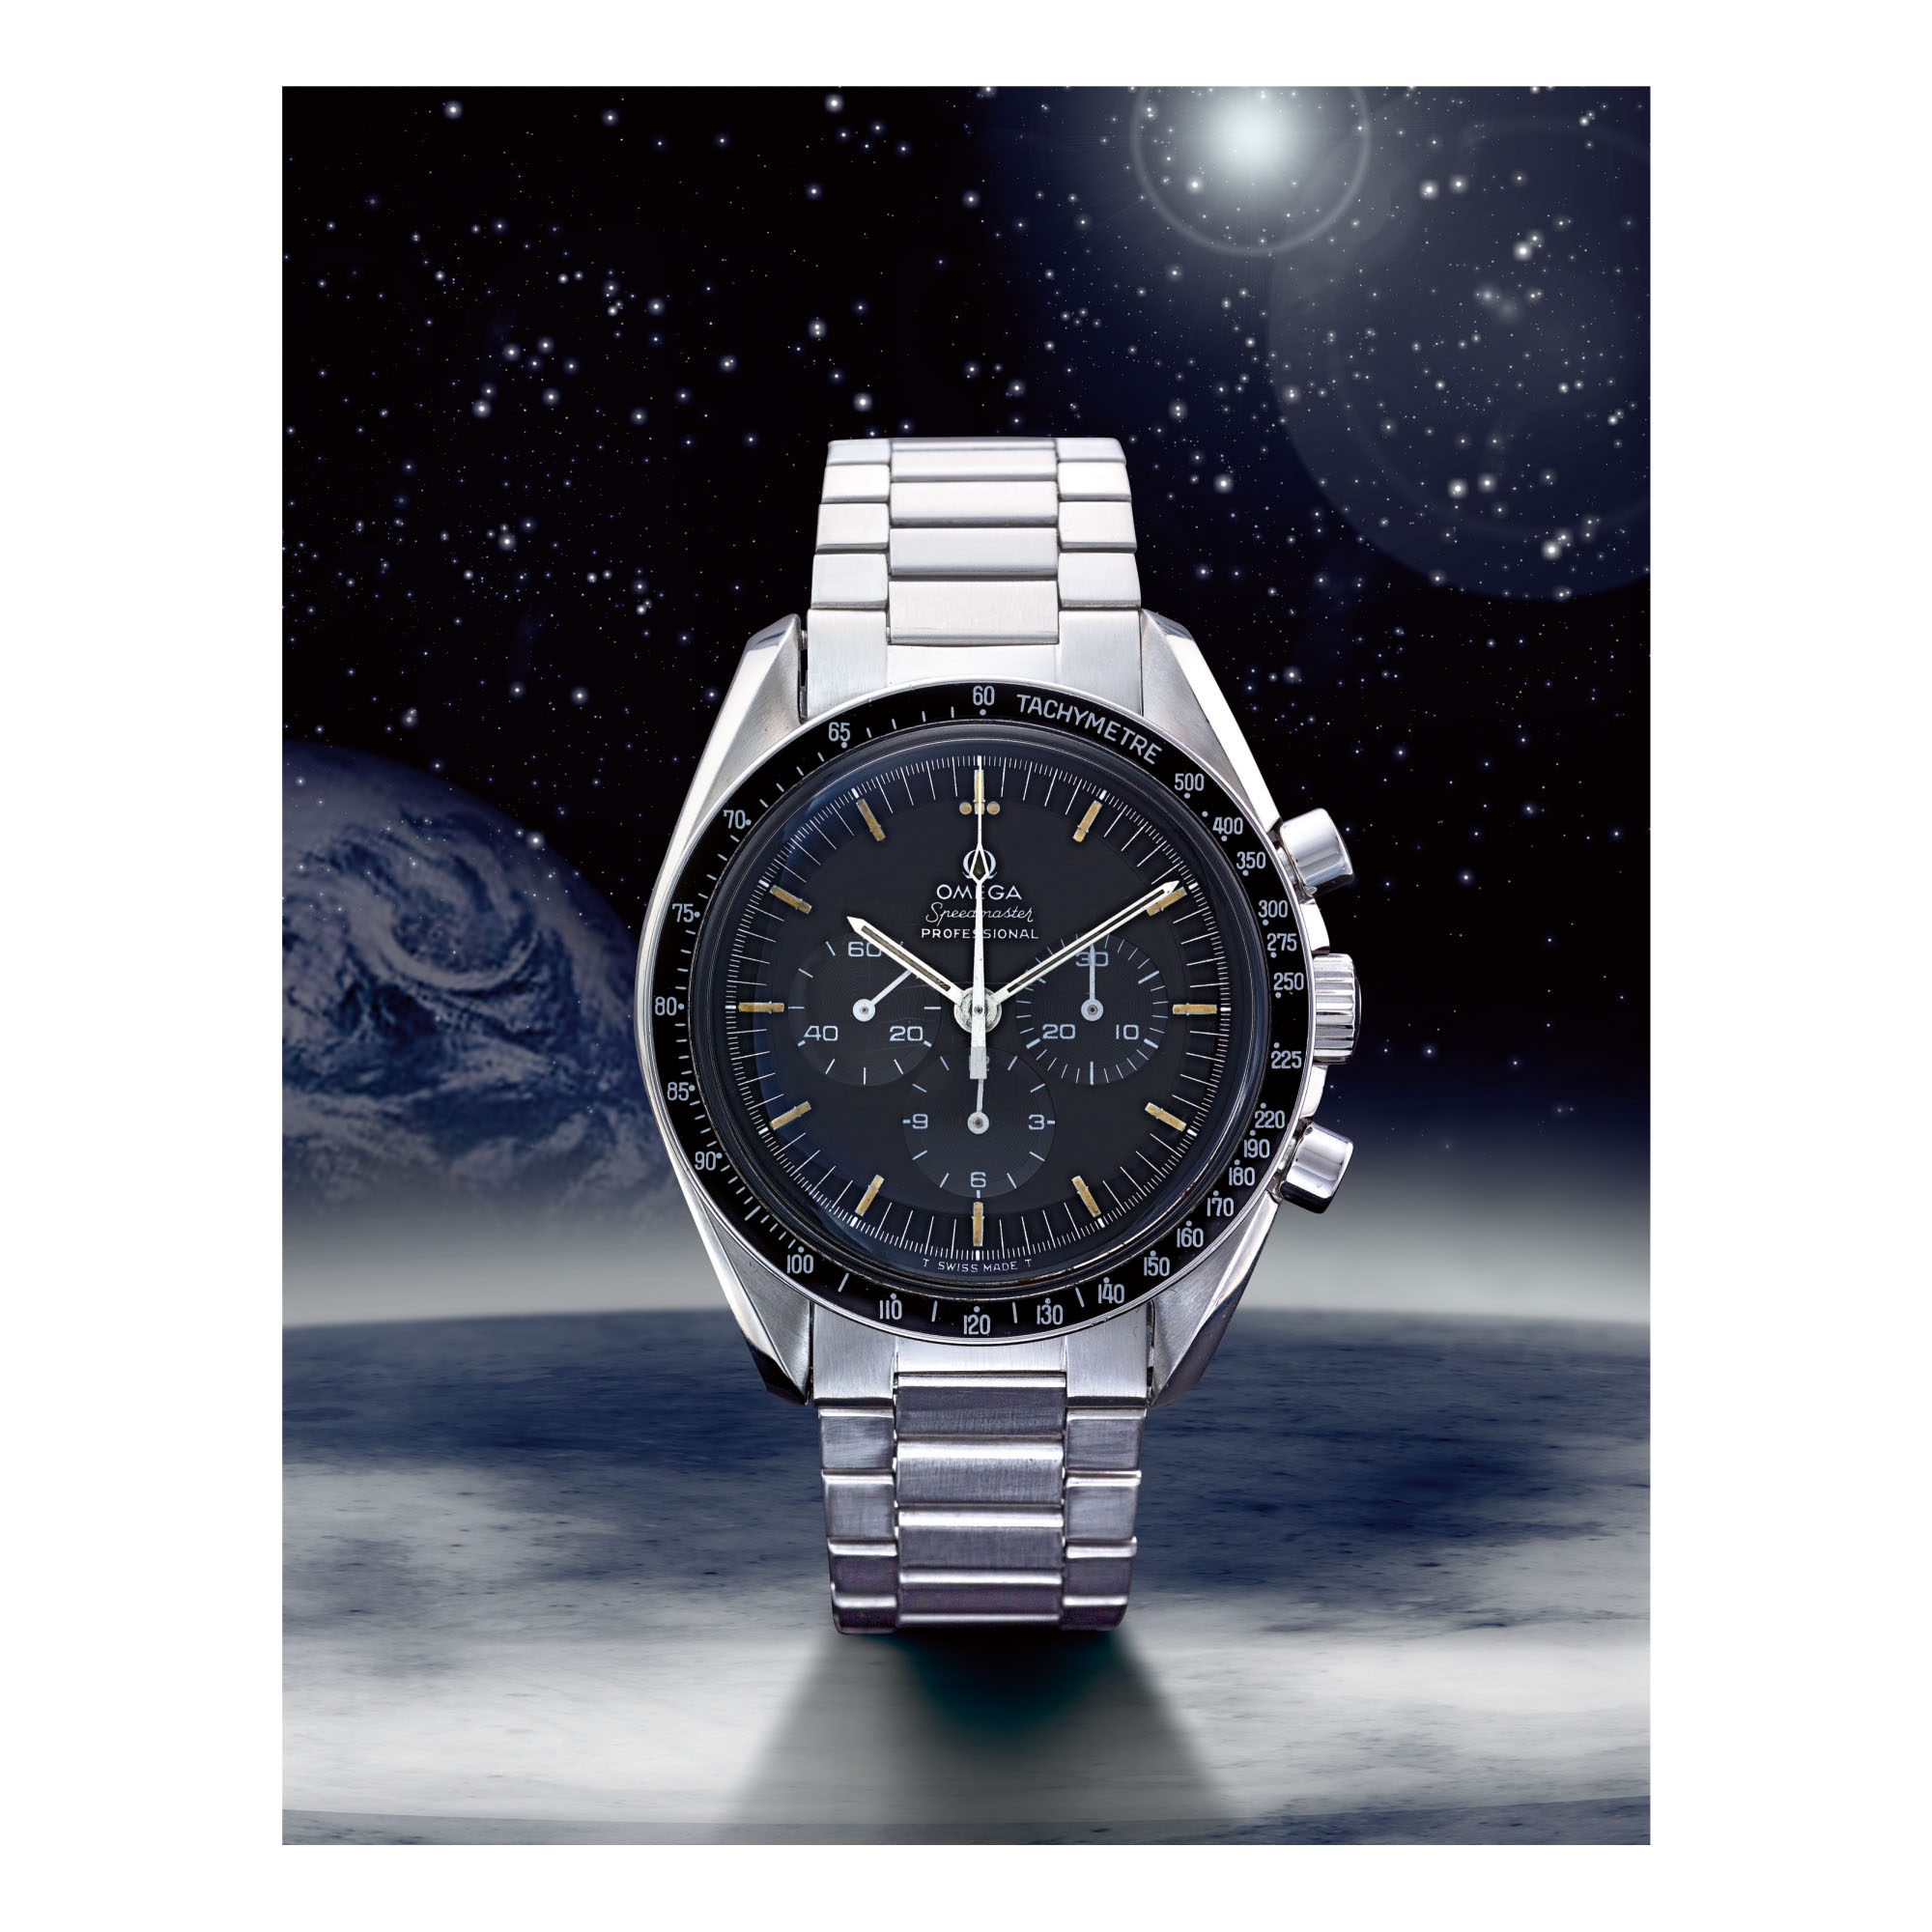 OMEGA | SPEEDMASTER REF 145.022-69 ST '220 BEZEL', A STAINLESS STEEL CHRONOGRAPH WRISTWATCH WITH BRACELET, MADE IN 1970